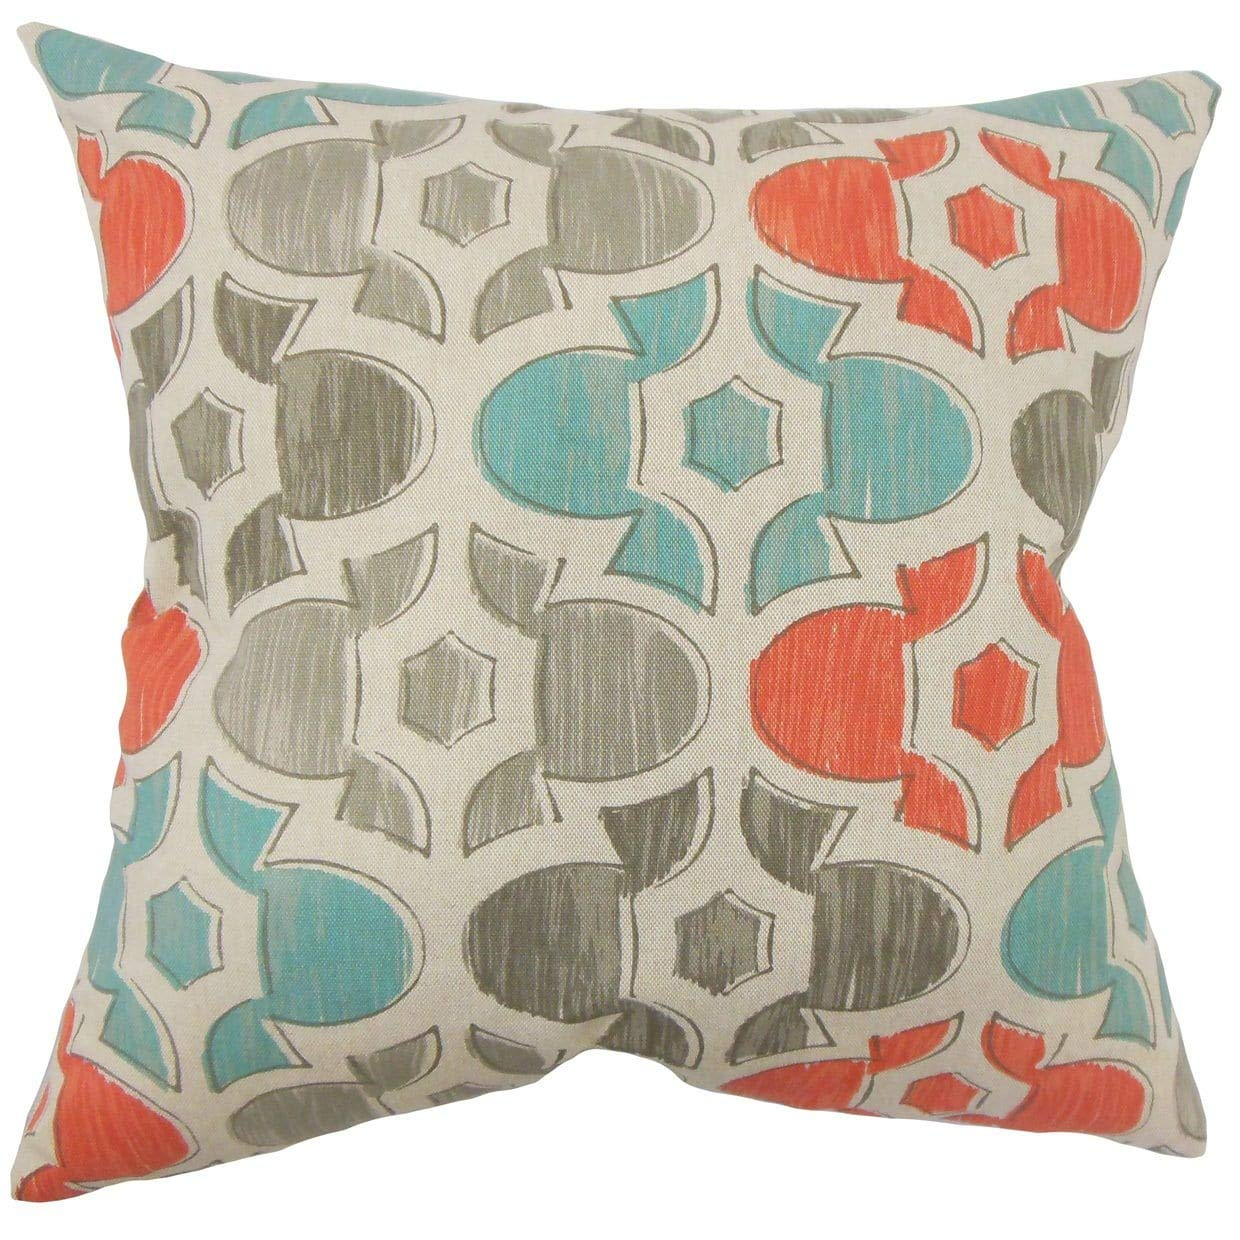 The Pillow Collection Zane Geometric Multicolor Down Filled Throw Pillow